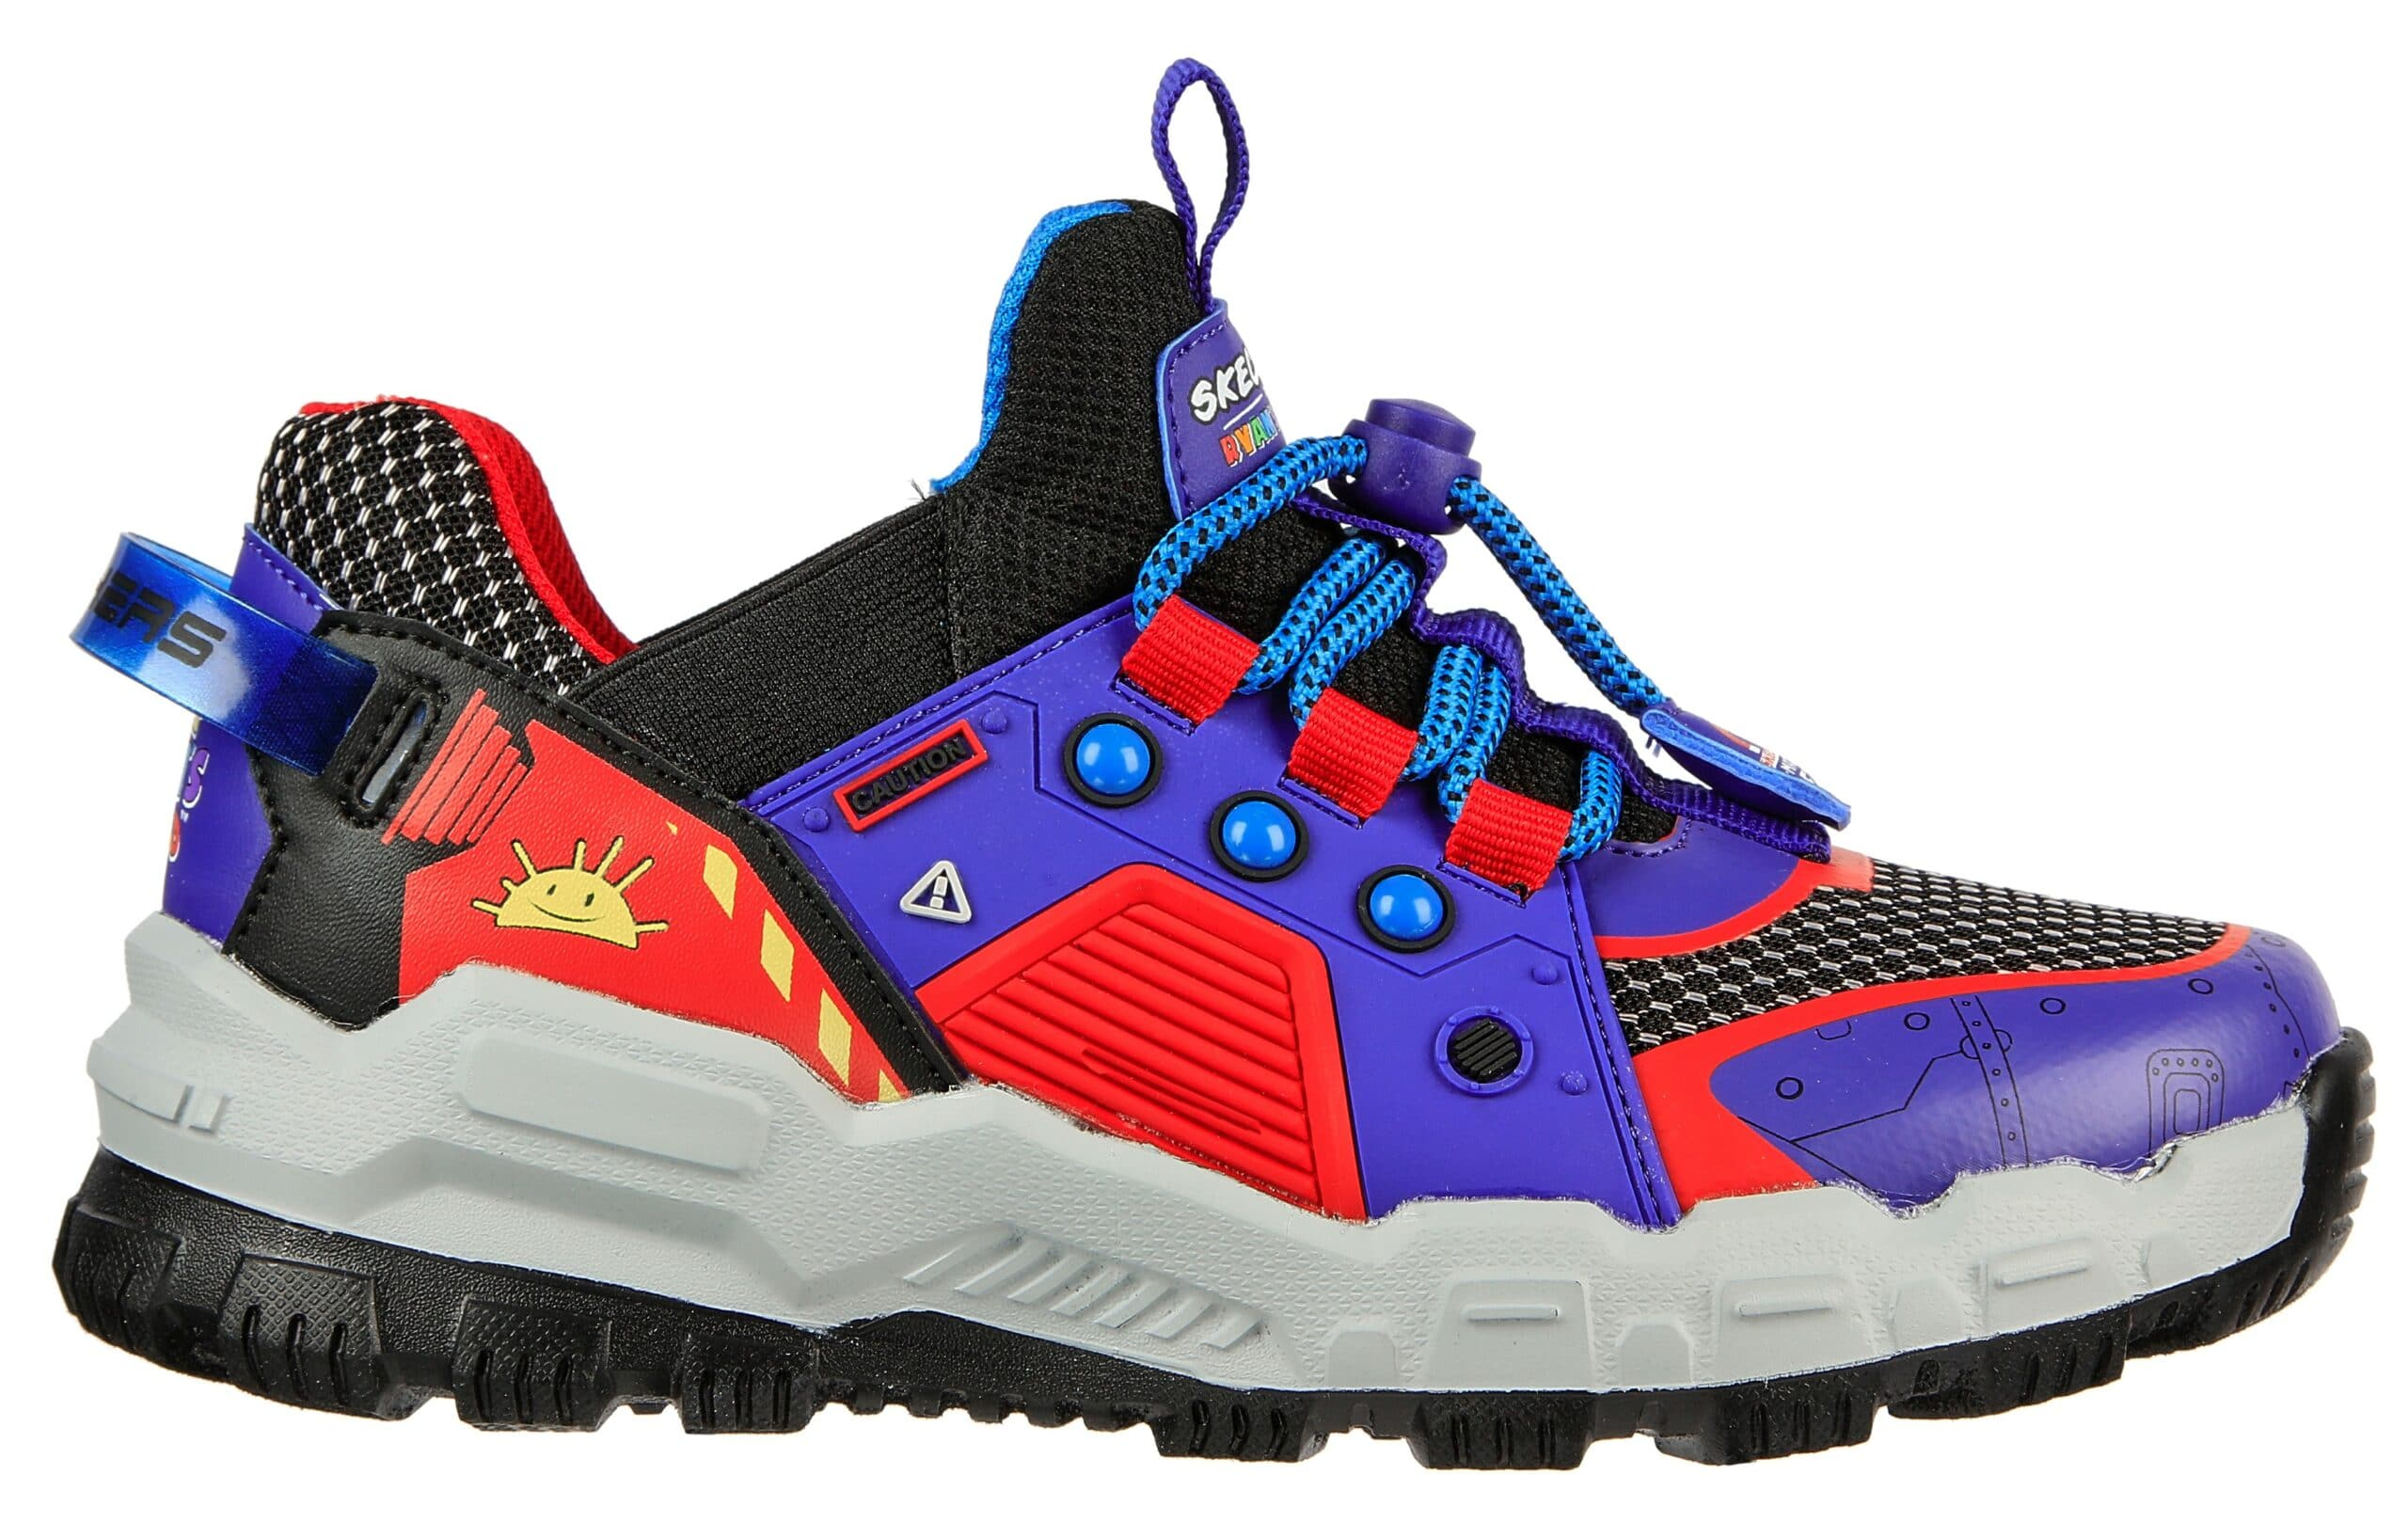 Skechers and Ryan's World YouTube channel collab for a shoe collection for kids 17